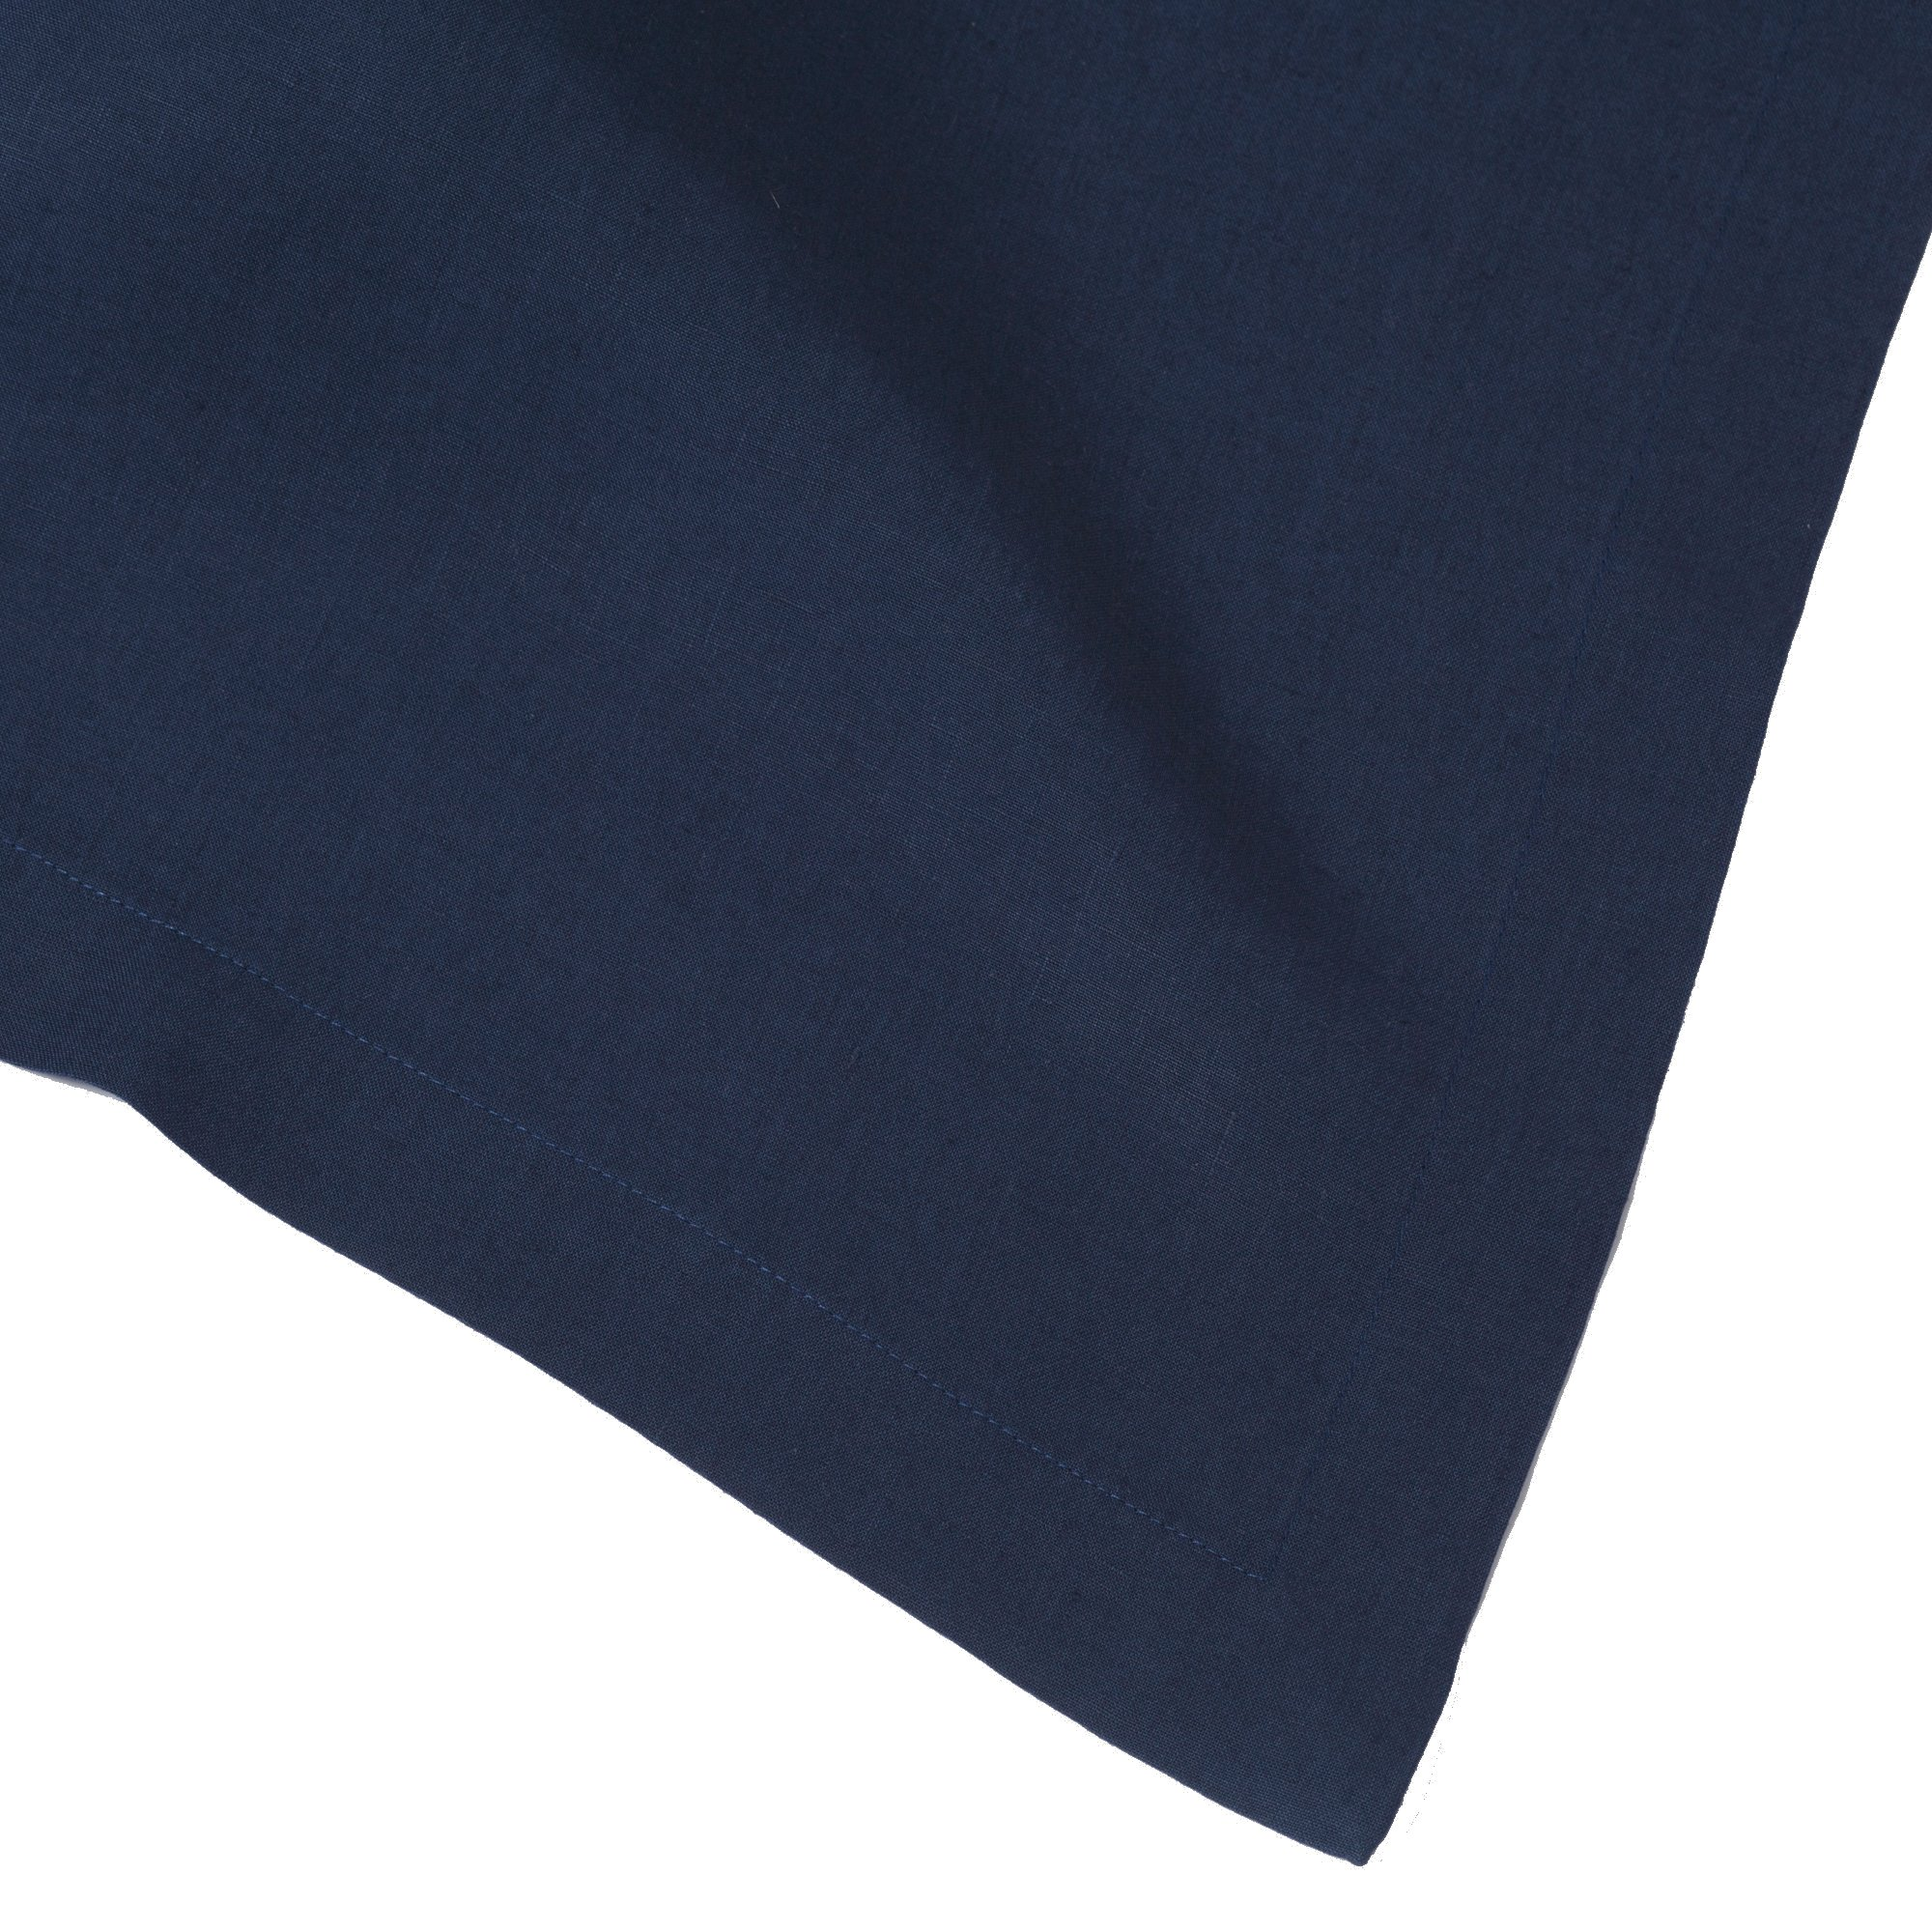 Navy Blue Pure Linen Tablecloth, 66''x144'' Rectangle